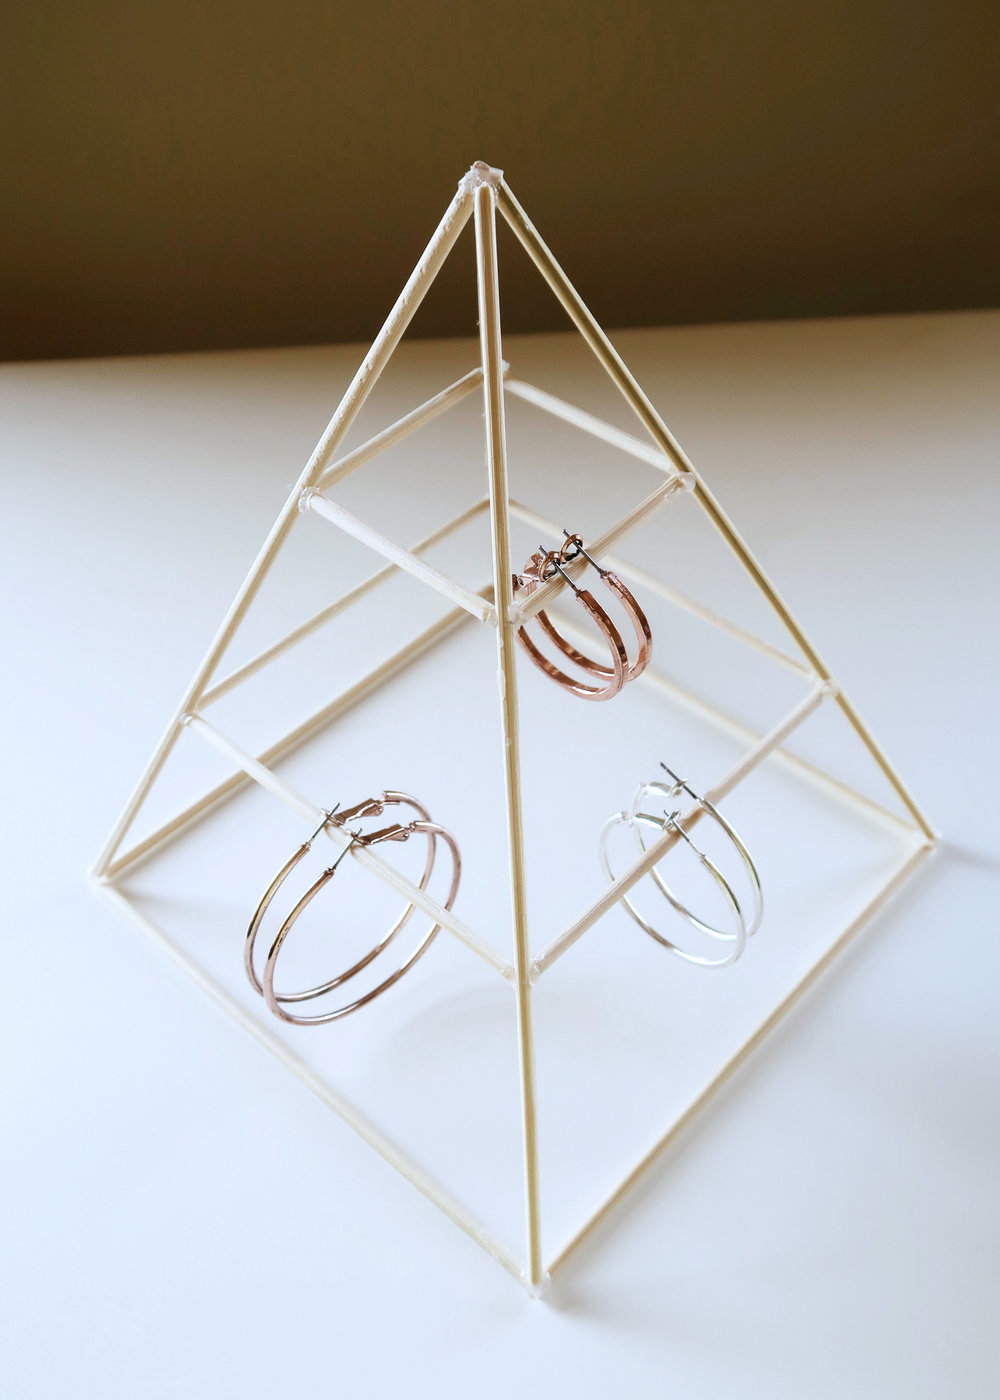 DIY Pyramid Jewellery Stand by Isoscella